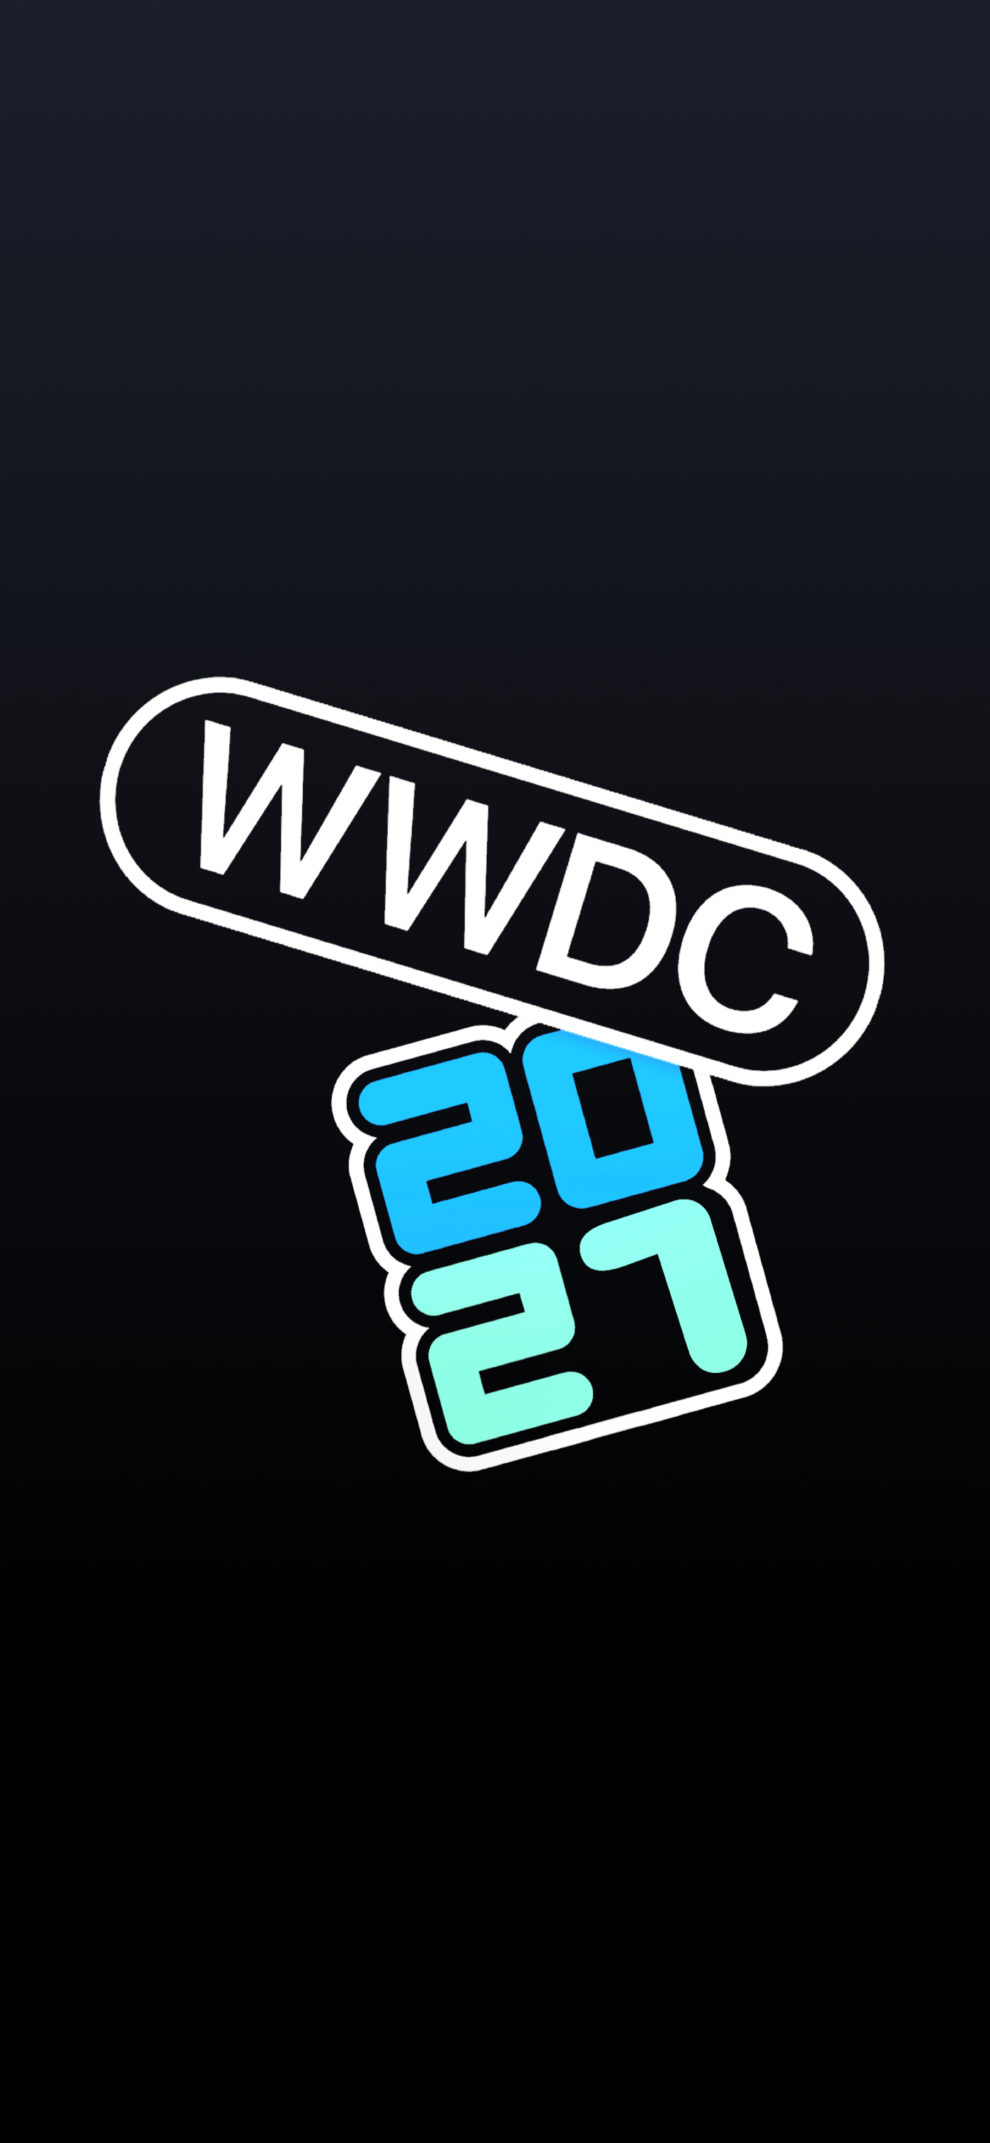 Download WWDC 2021 Wallpapers for iPhone, Mac or Apple Watch